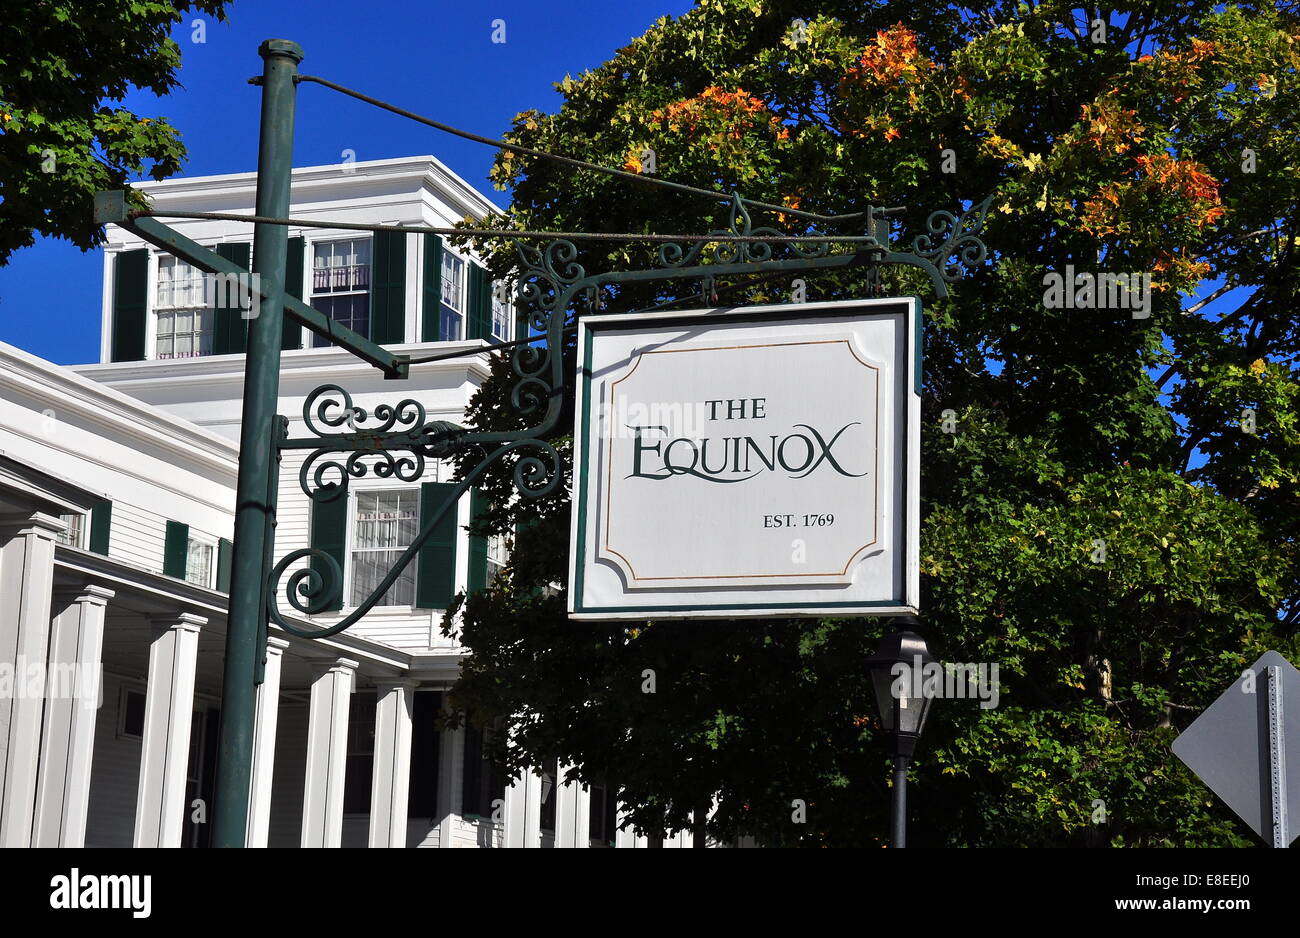 equinox main hotel deluxe. Manchester Village, Vermont: The Greek Revival Luxury Equinox Hotel And Resort Is A Village Main Deluxe